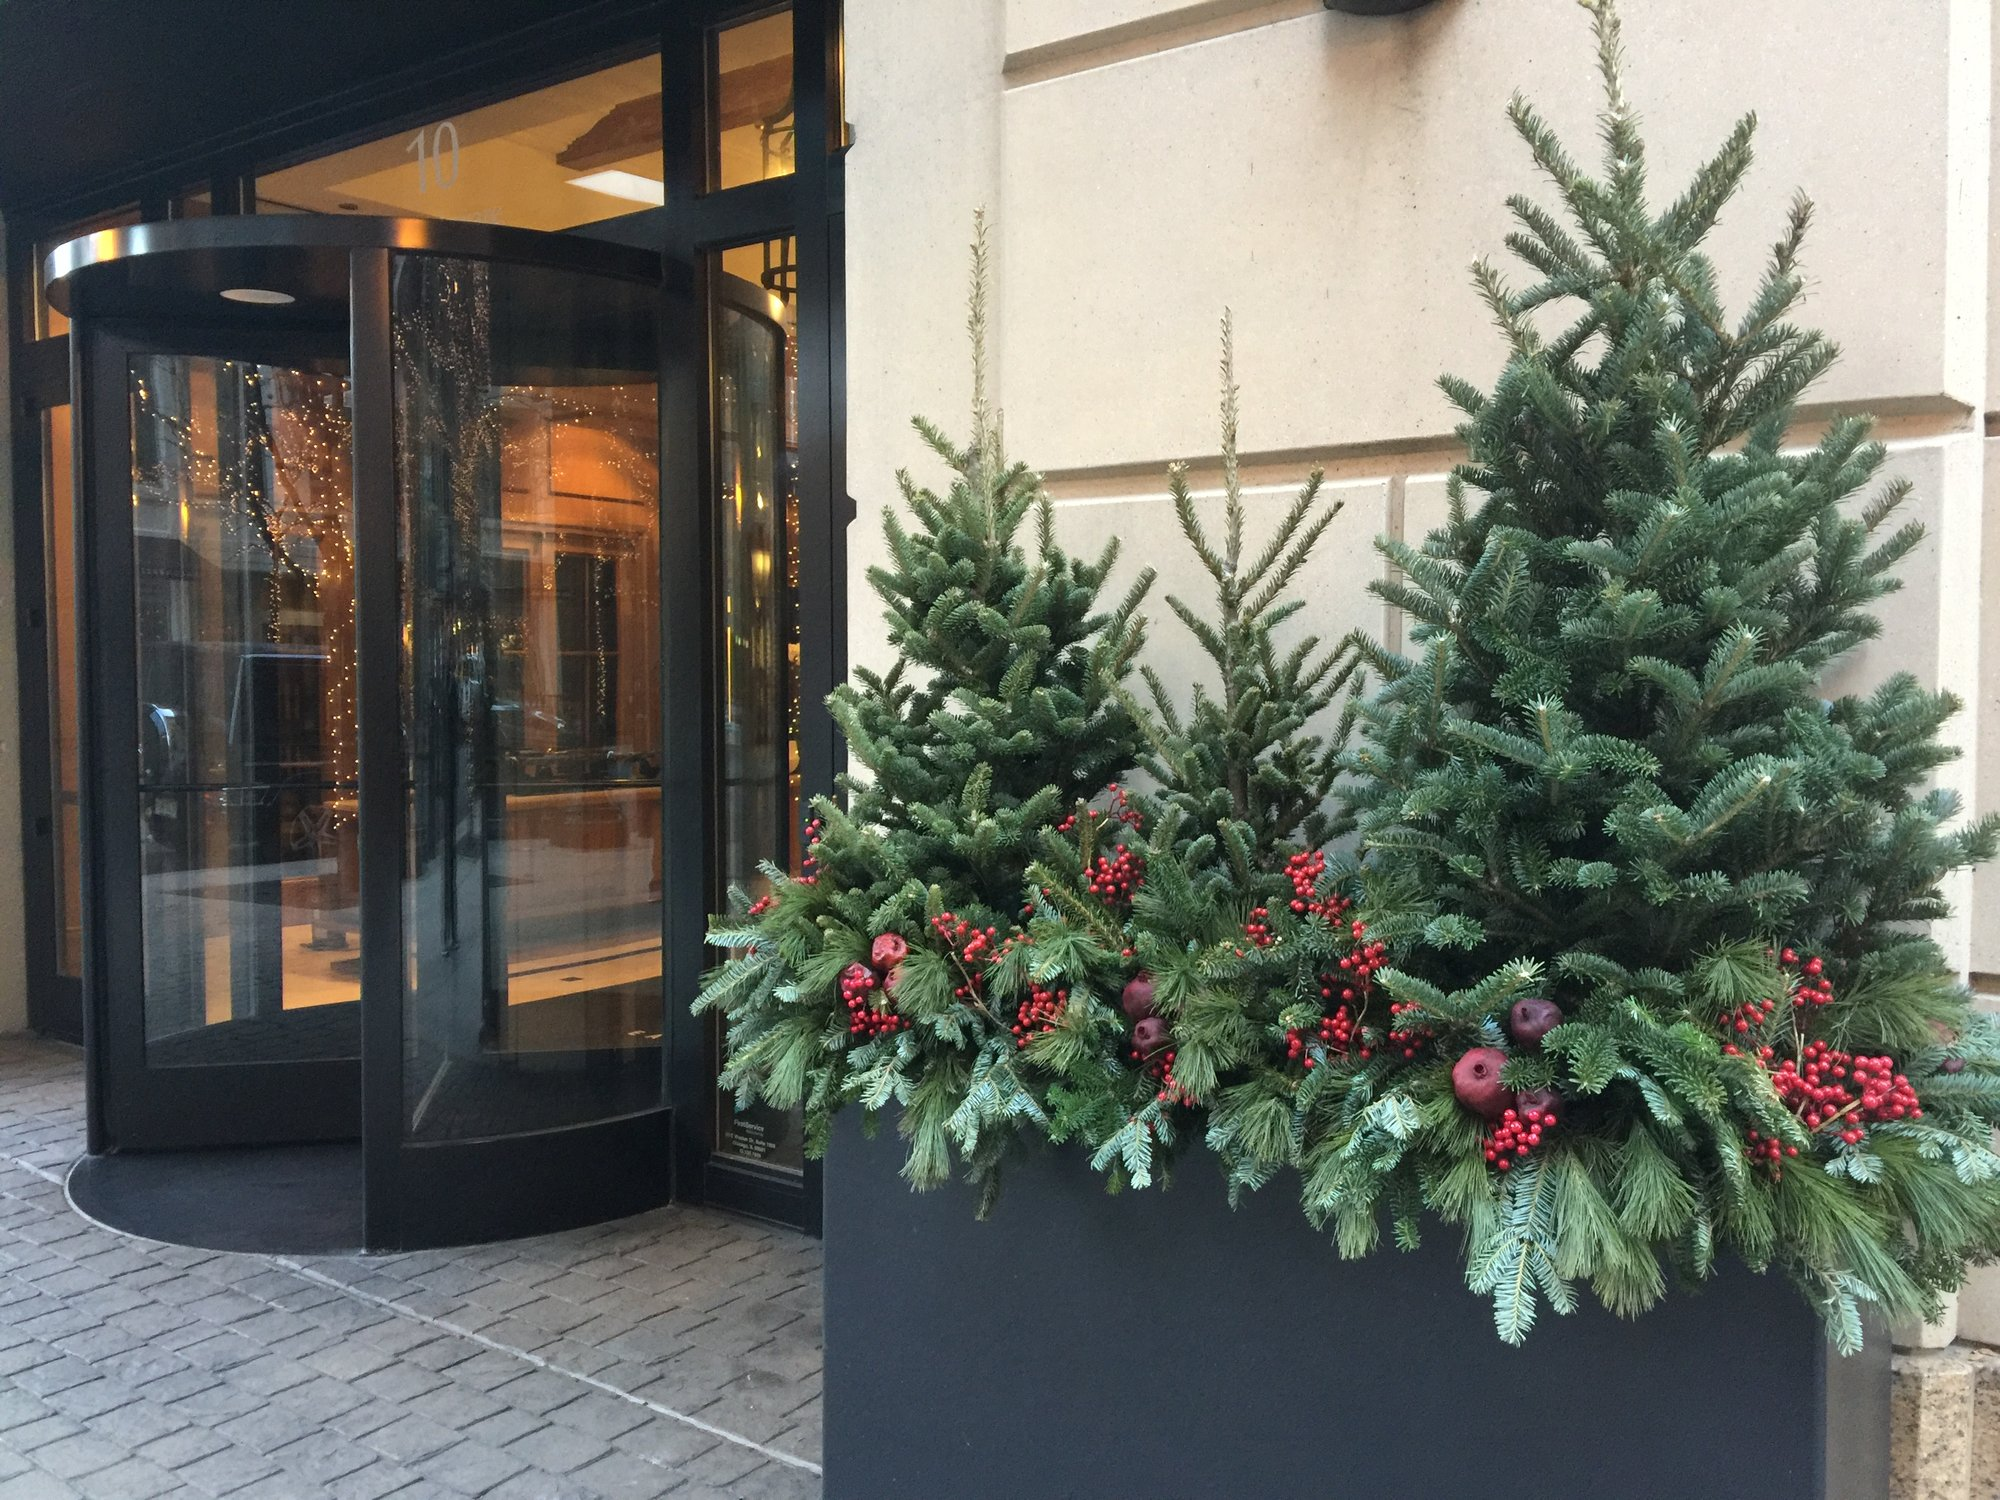 holiday decor at building entrance